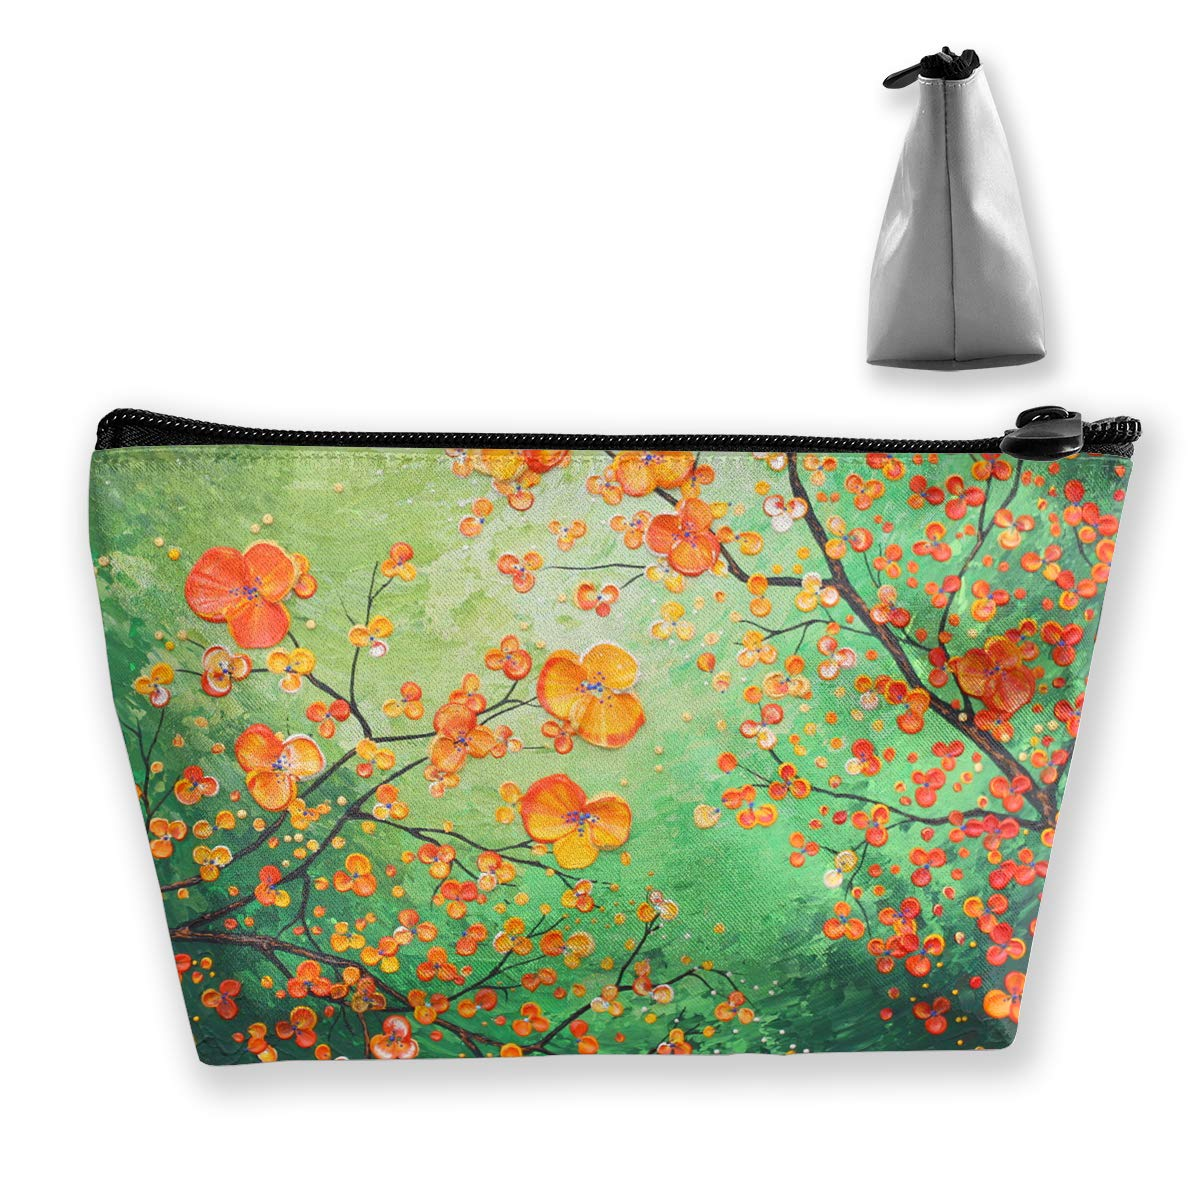 Trapezoid Toiletry Pouch Portable Travel Bag Leaf Reality Artist Zipper Wallet